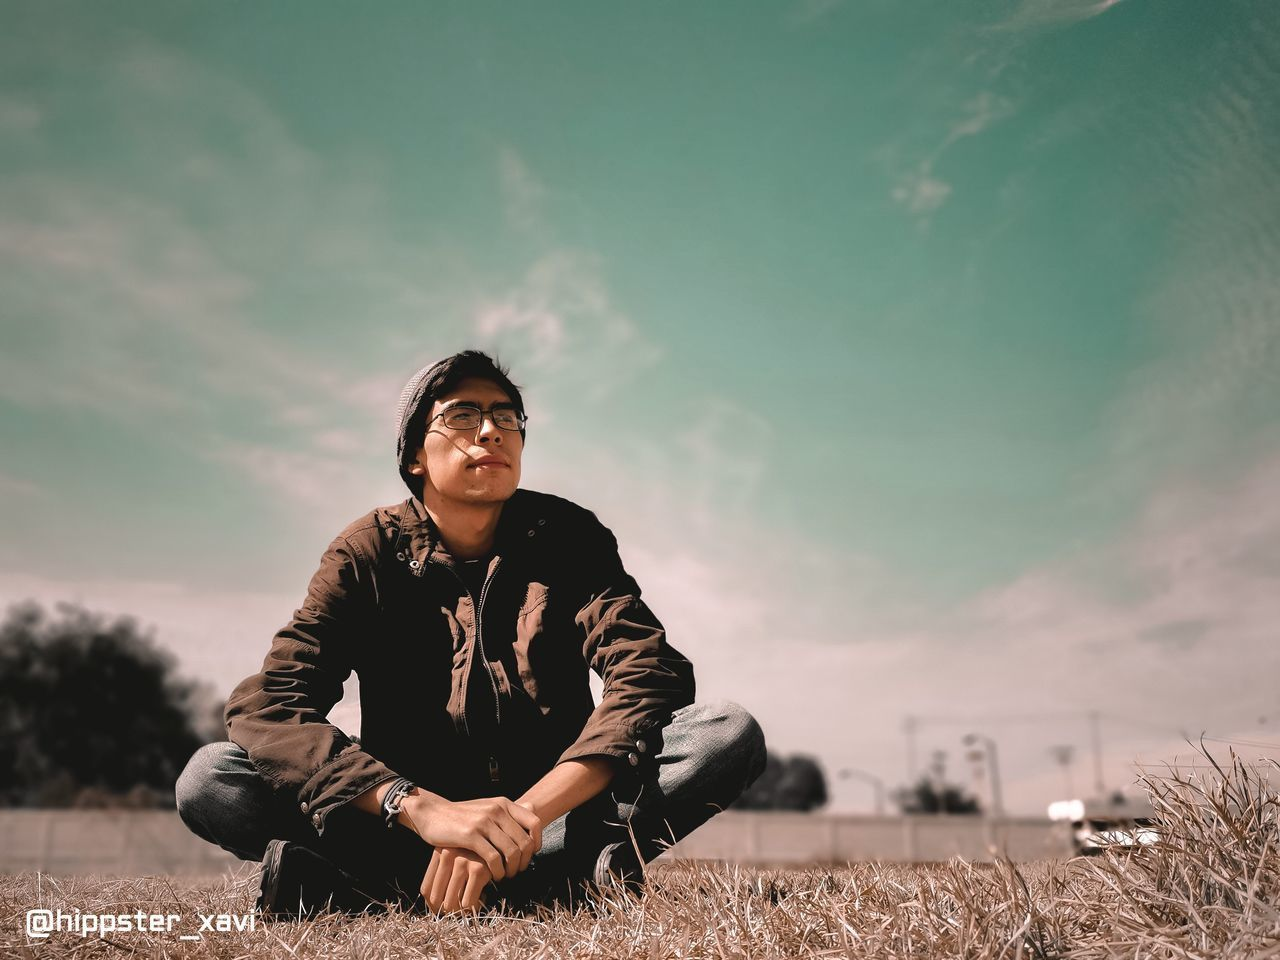 YOUNG MAN SITTING ON FIELD AGAINST SKY